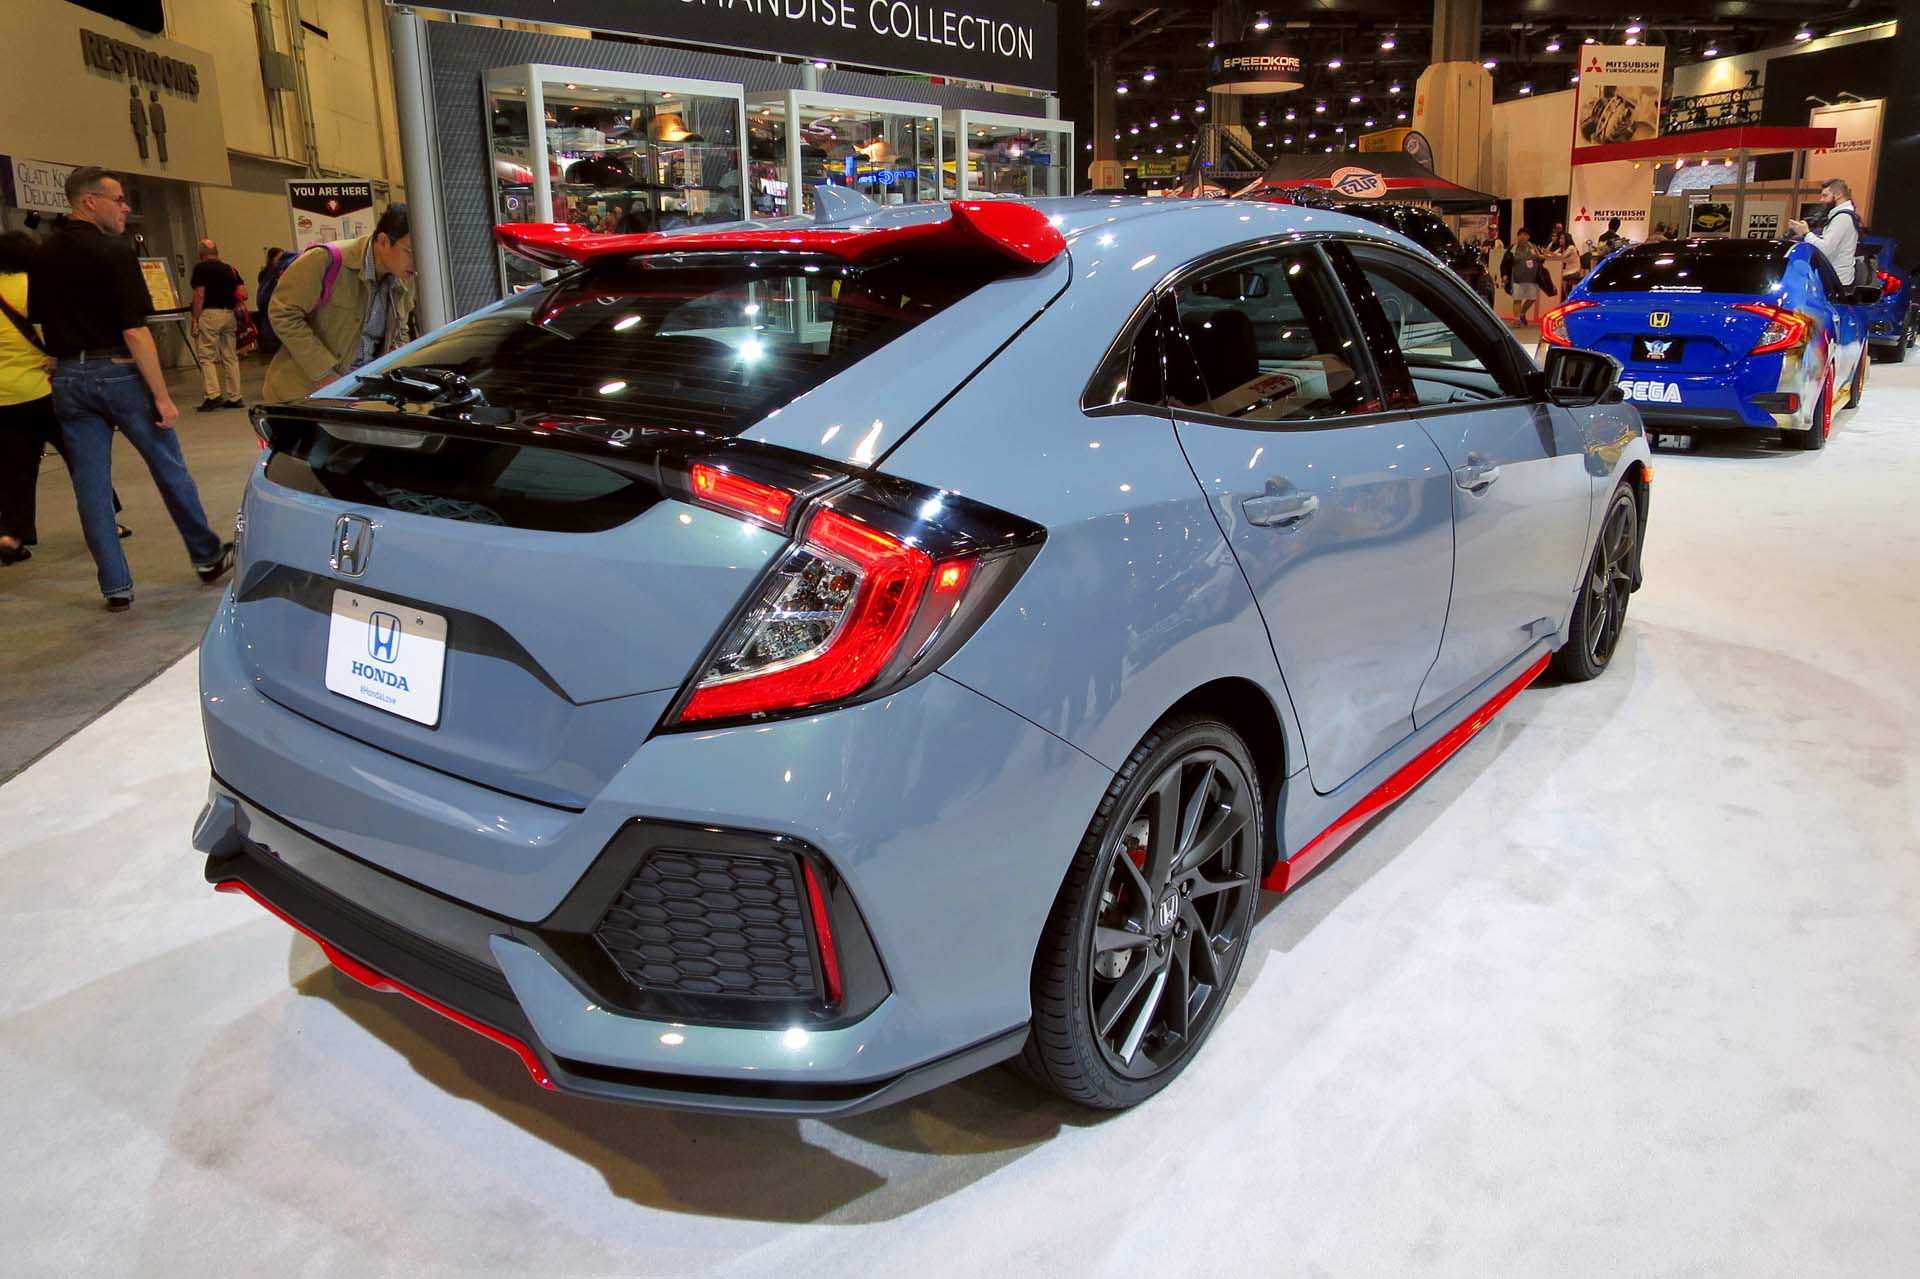 The Honda Civic Hatchback is displayed with all of its new optional accessories painted red.